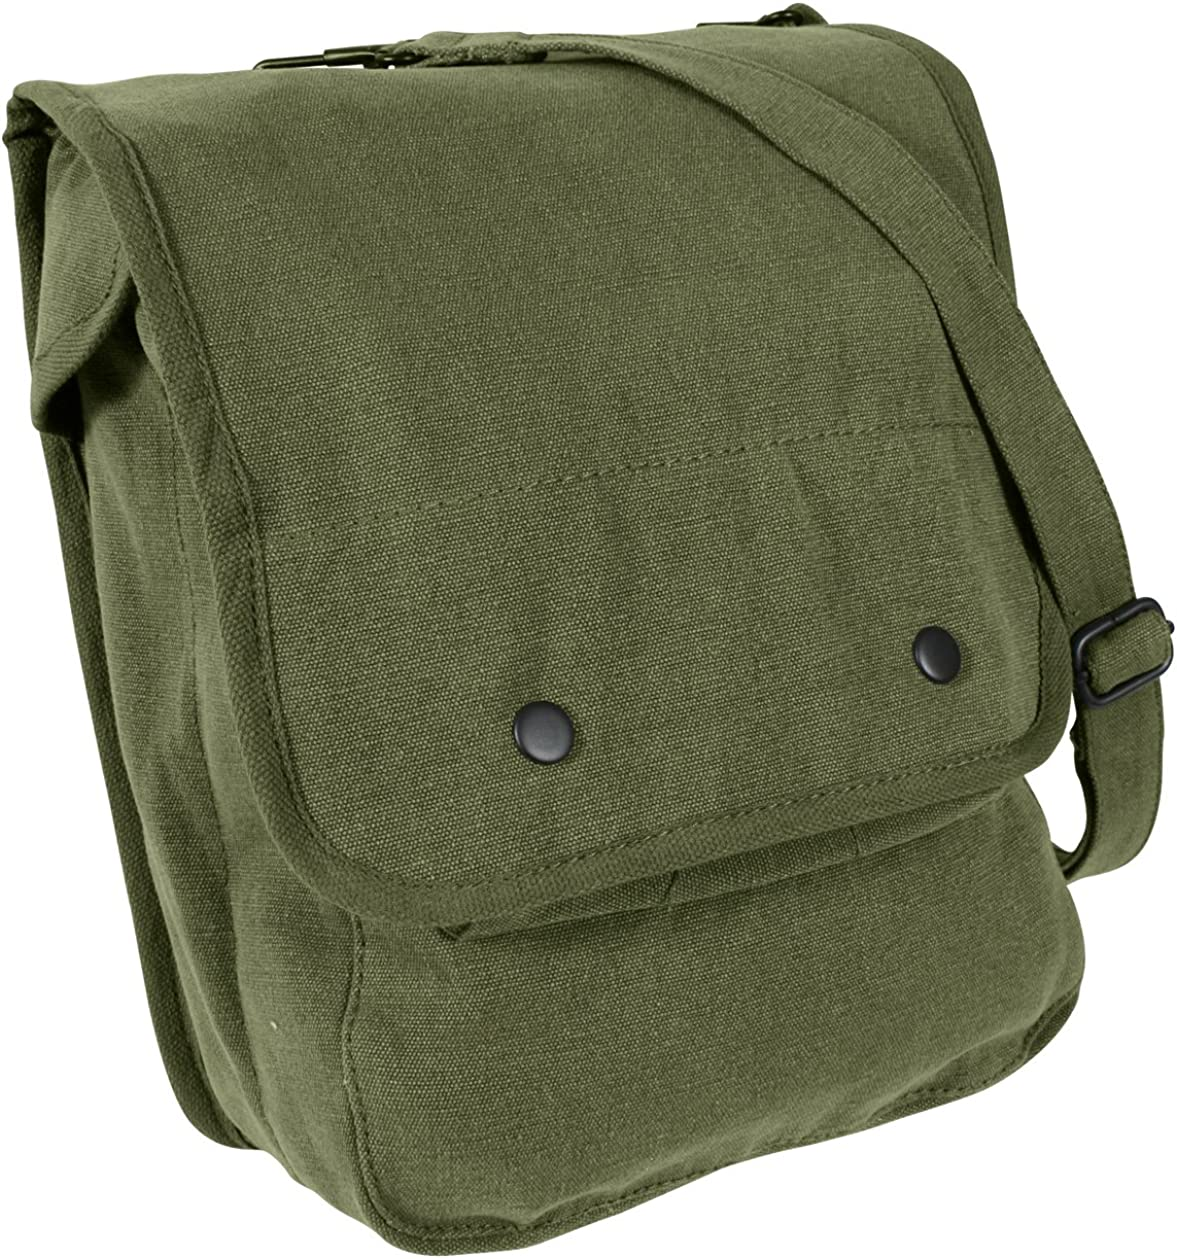 Rothco Canvas Map Case Shoulder Bag, Olive Drab: Sports & Outdoors